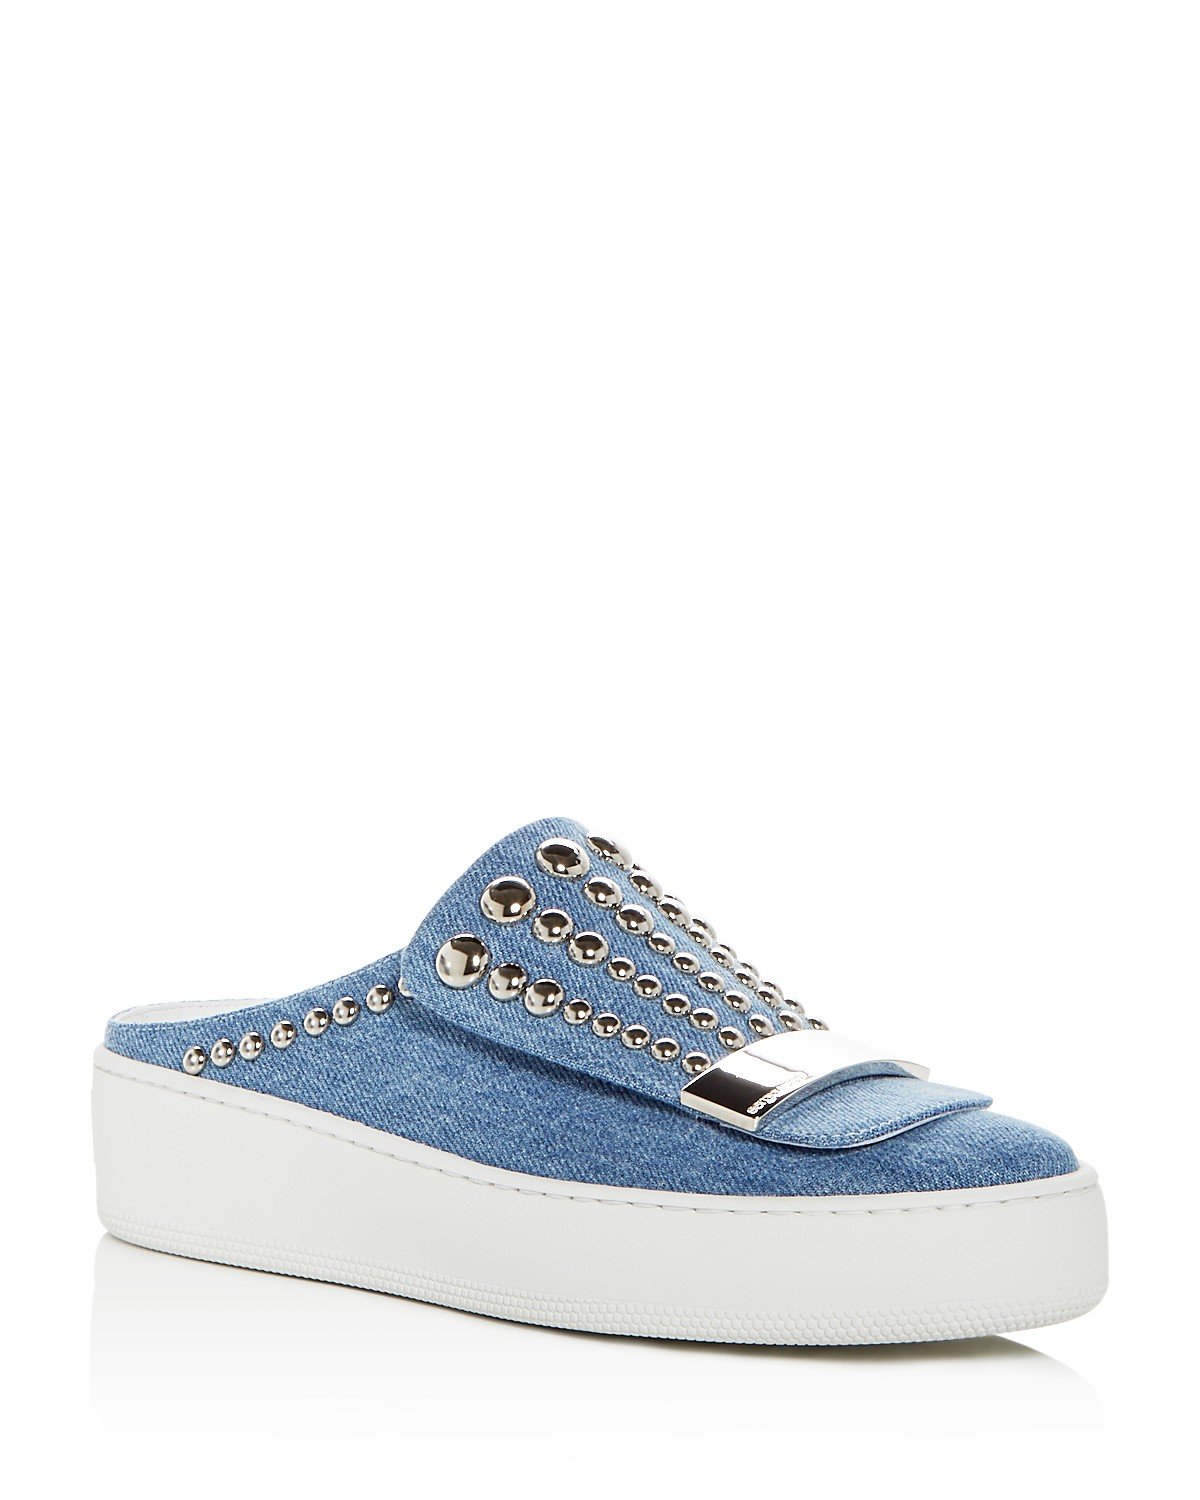 studded platform sneakers - Blue Sergio Rossi YWnIPGb